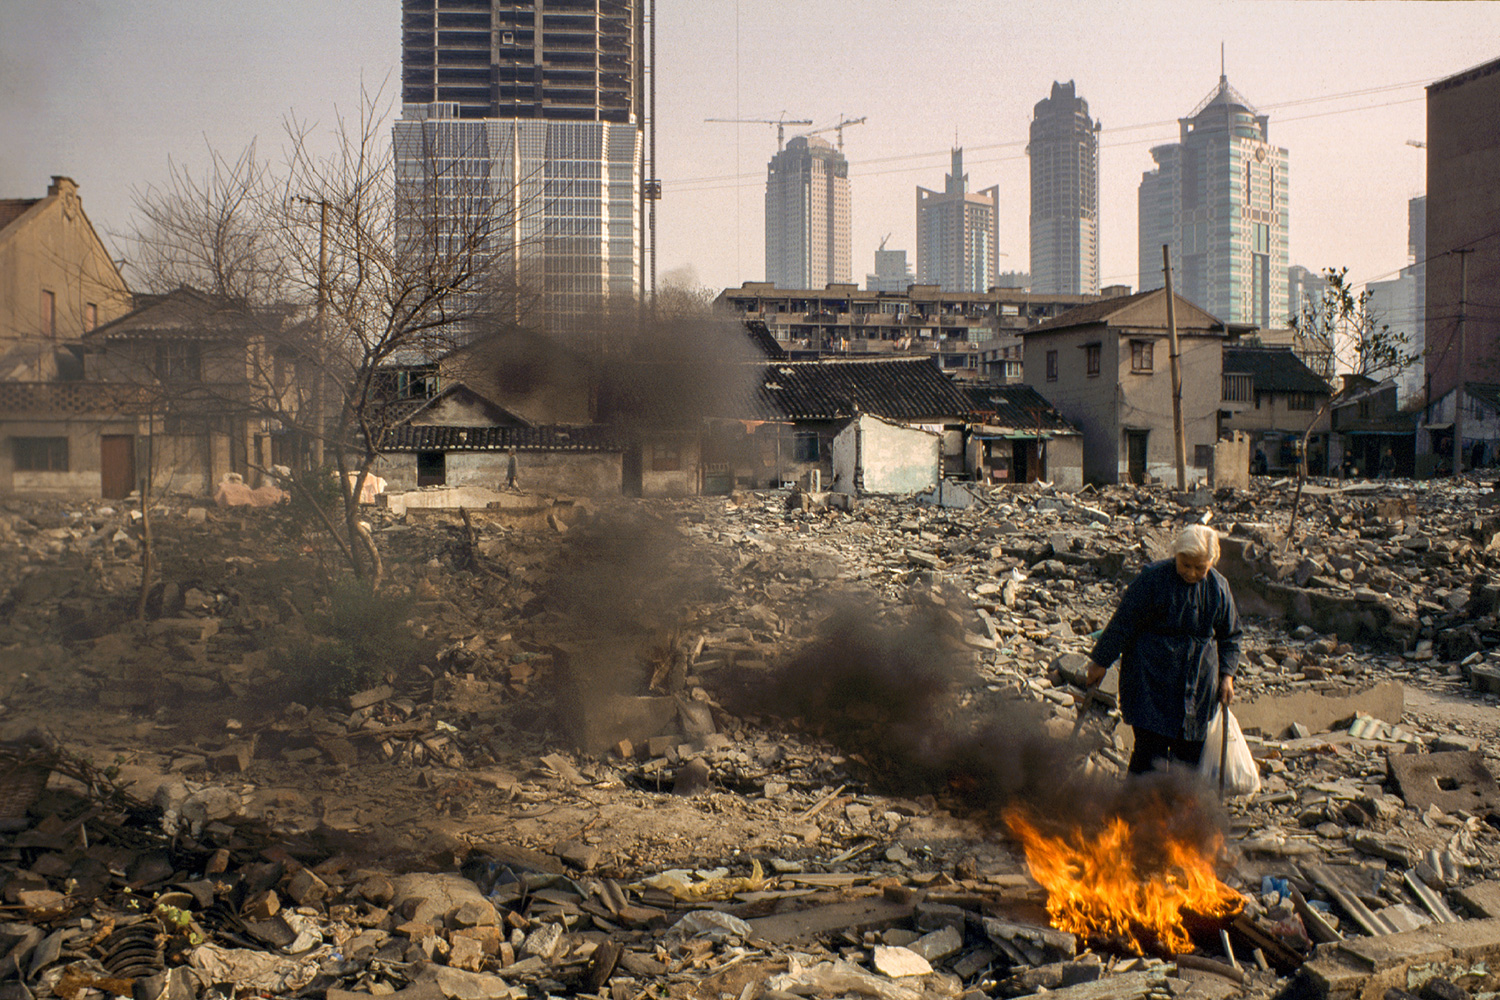 Preparing to vacate her home, an elderly resident burns discarded personal items, 1997.